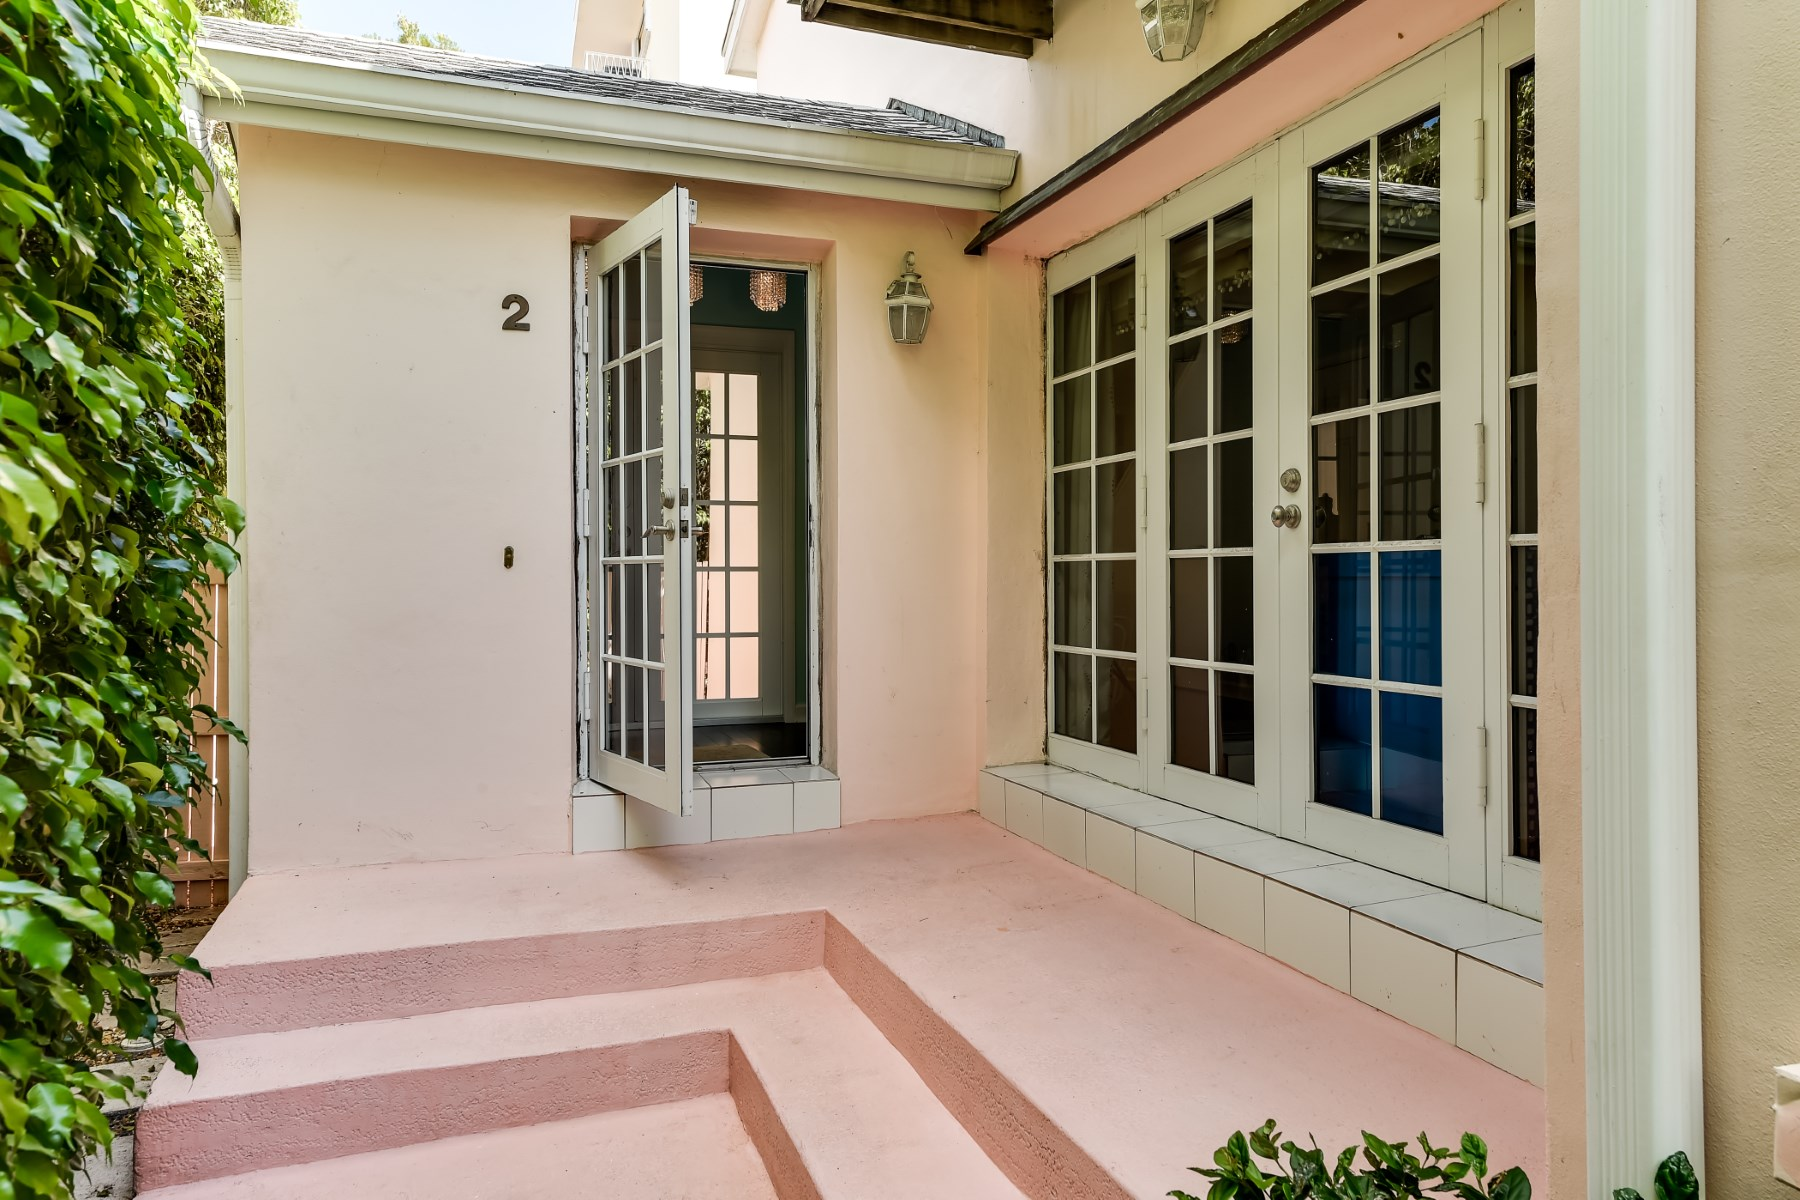 Townhouse for Sale at Charming Two Story Townhome 173 Peruvian Ave Apt 2 Palm Beach, Florida, 33480 United States